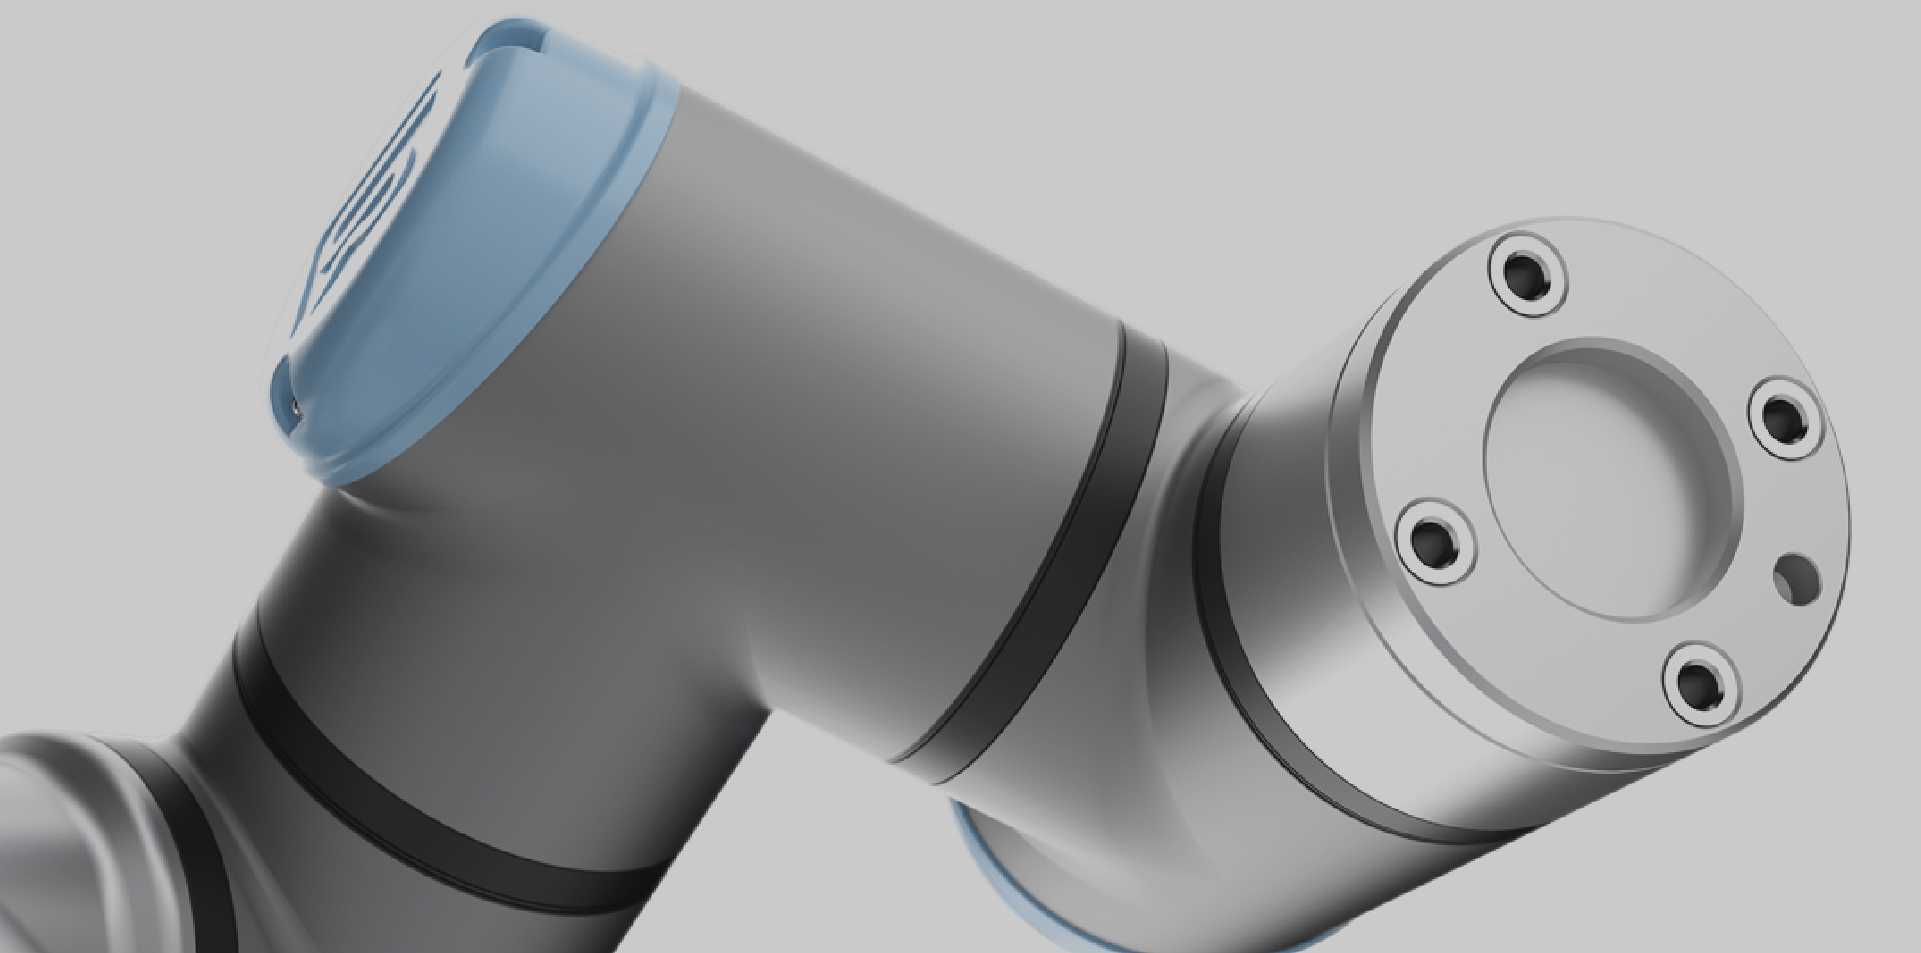 Download a Universal Robots whitepaper to learnmore.